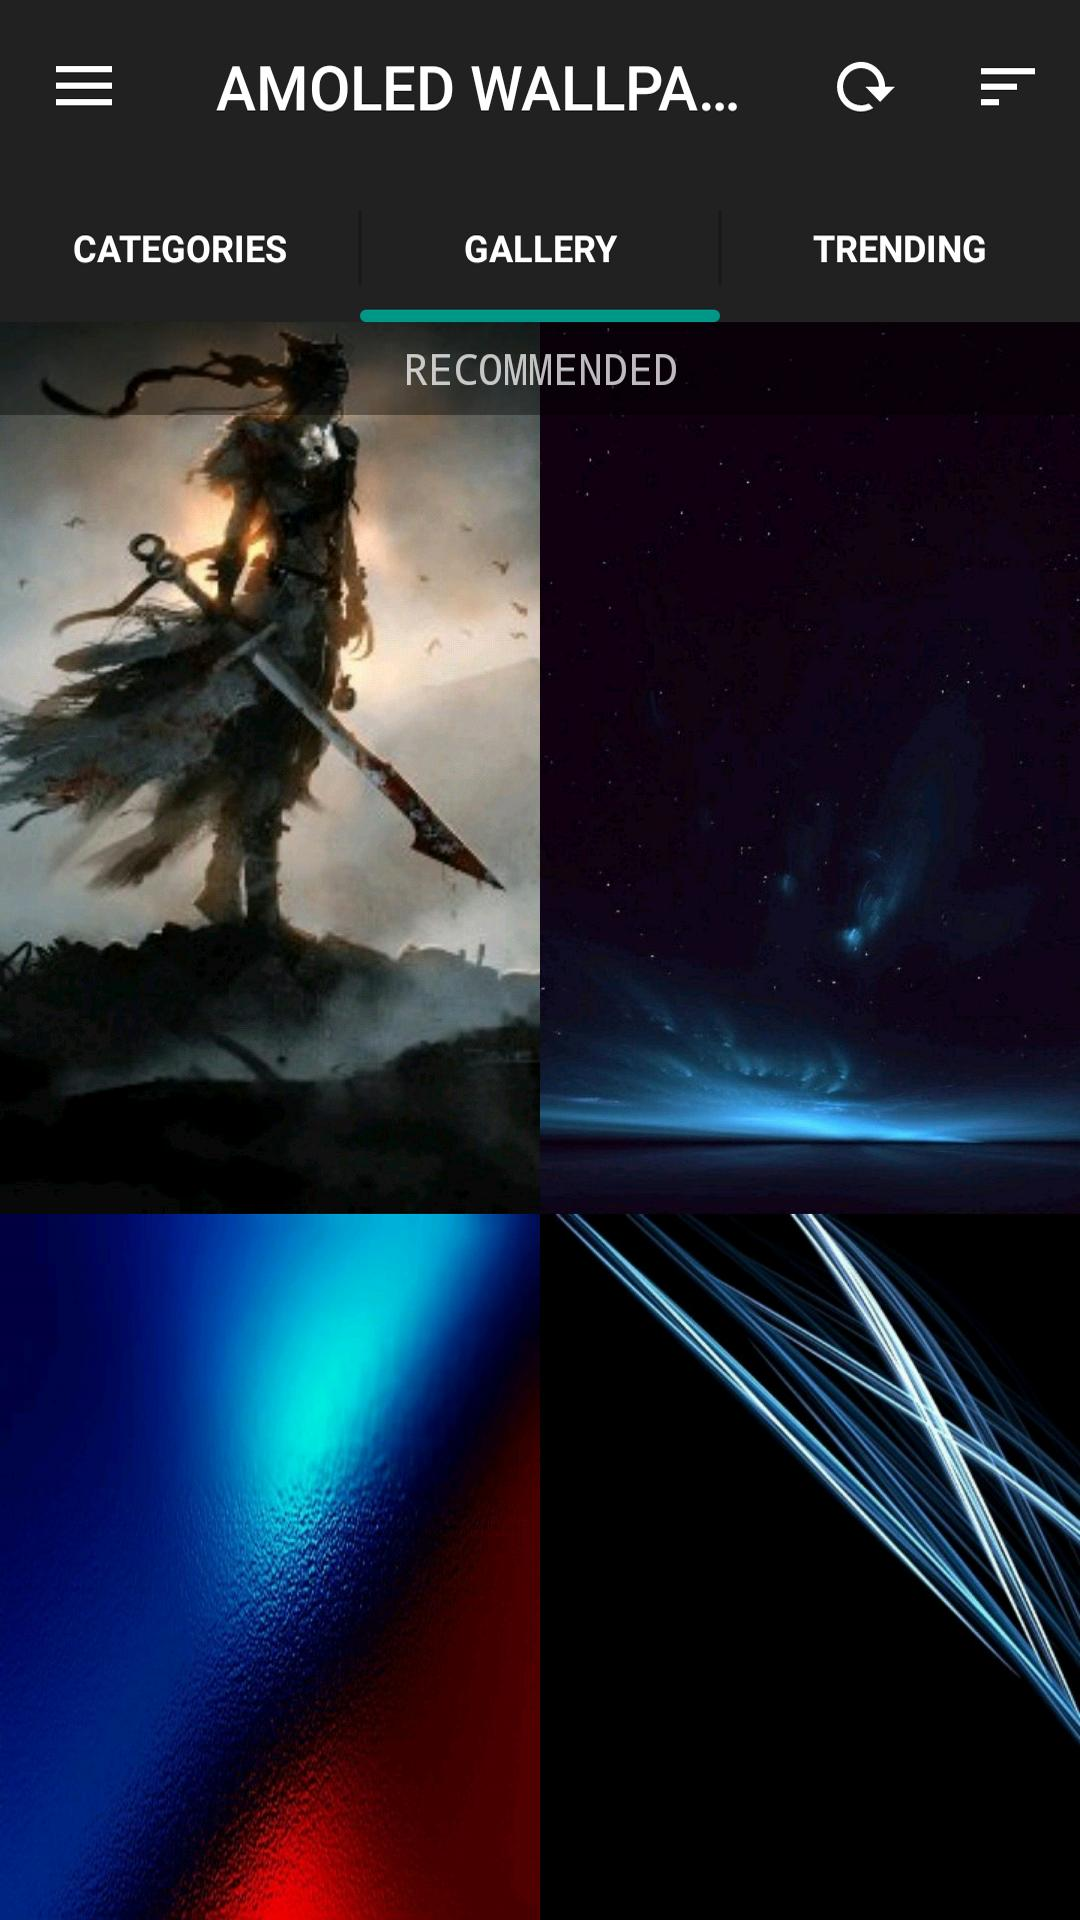 Amoled Wallpapers 4k 2k Ultra Hd For Android Apk Download